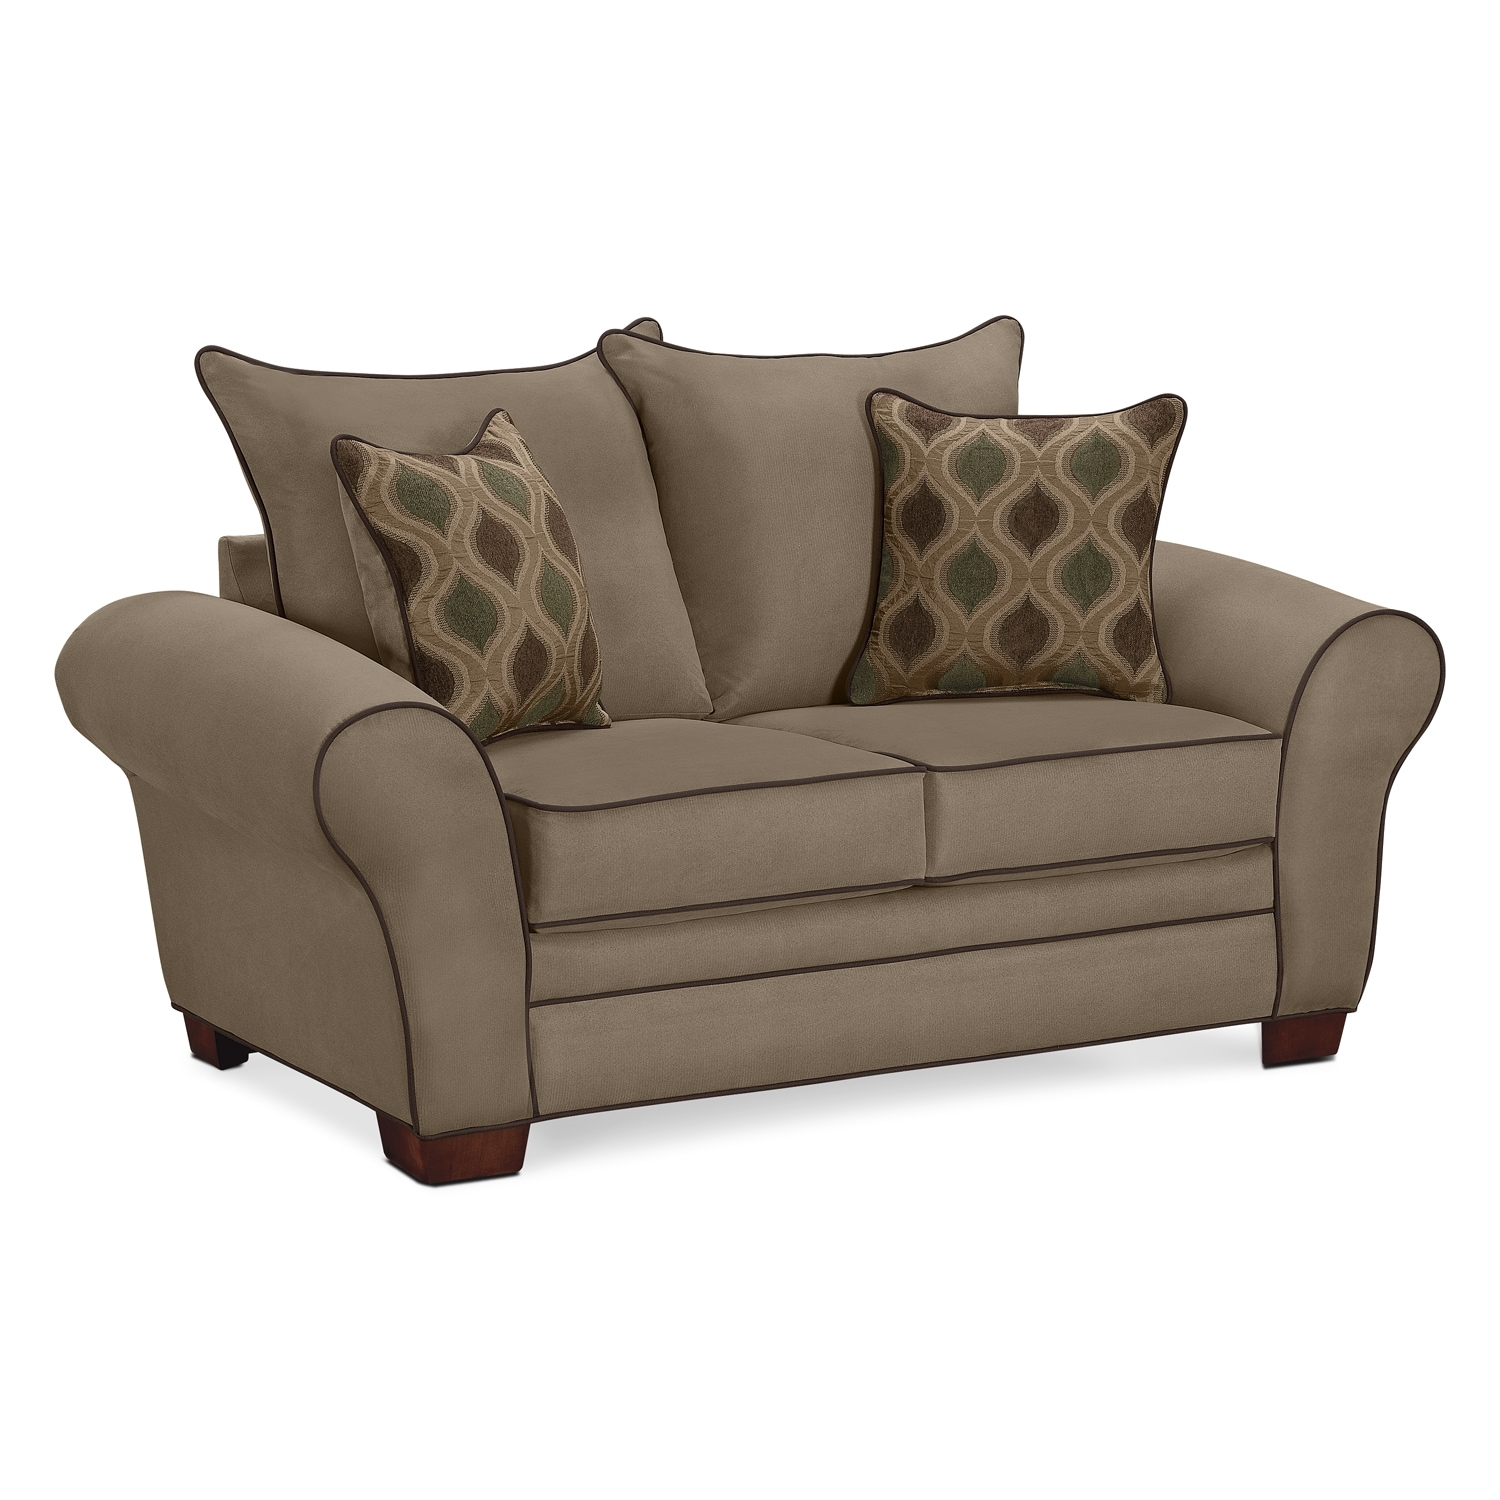 Rendezvous Loveseat - Tan